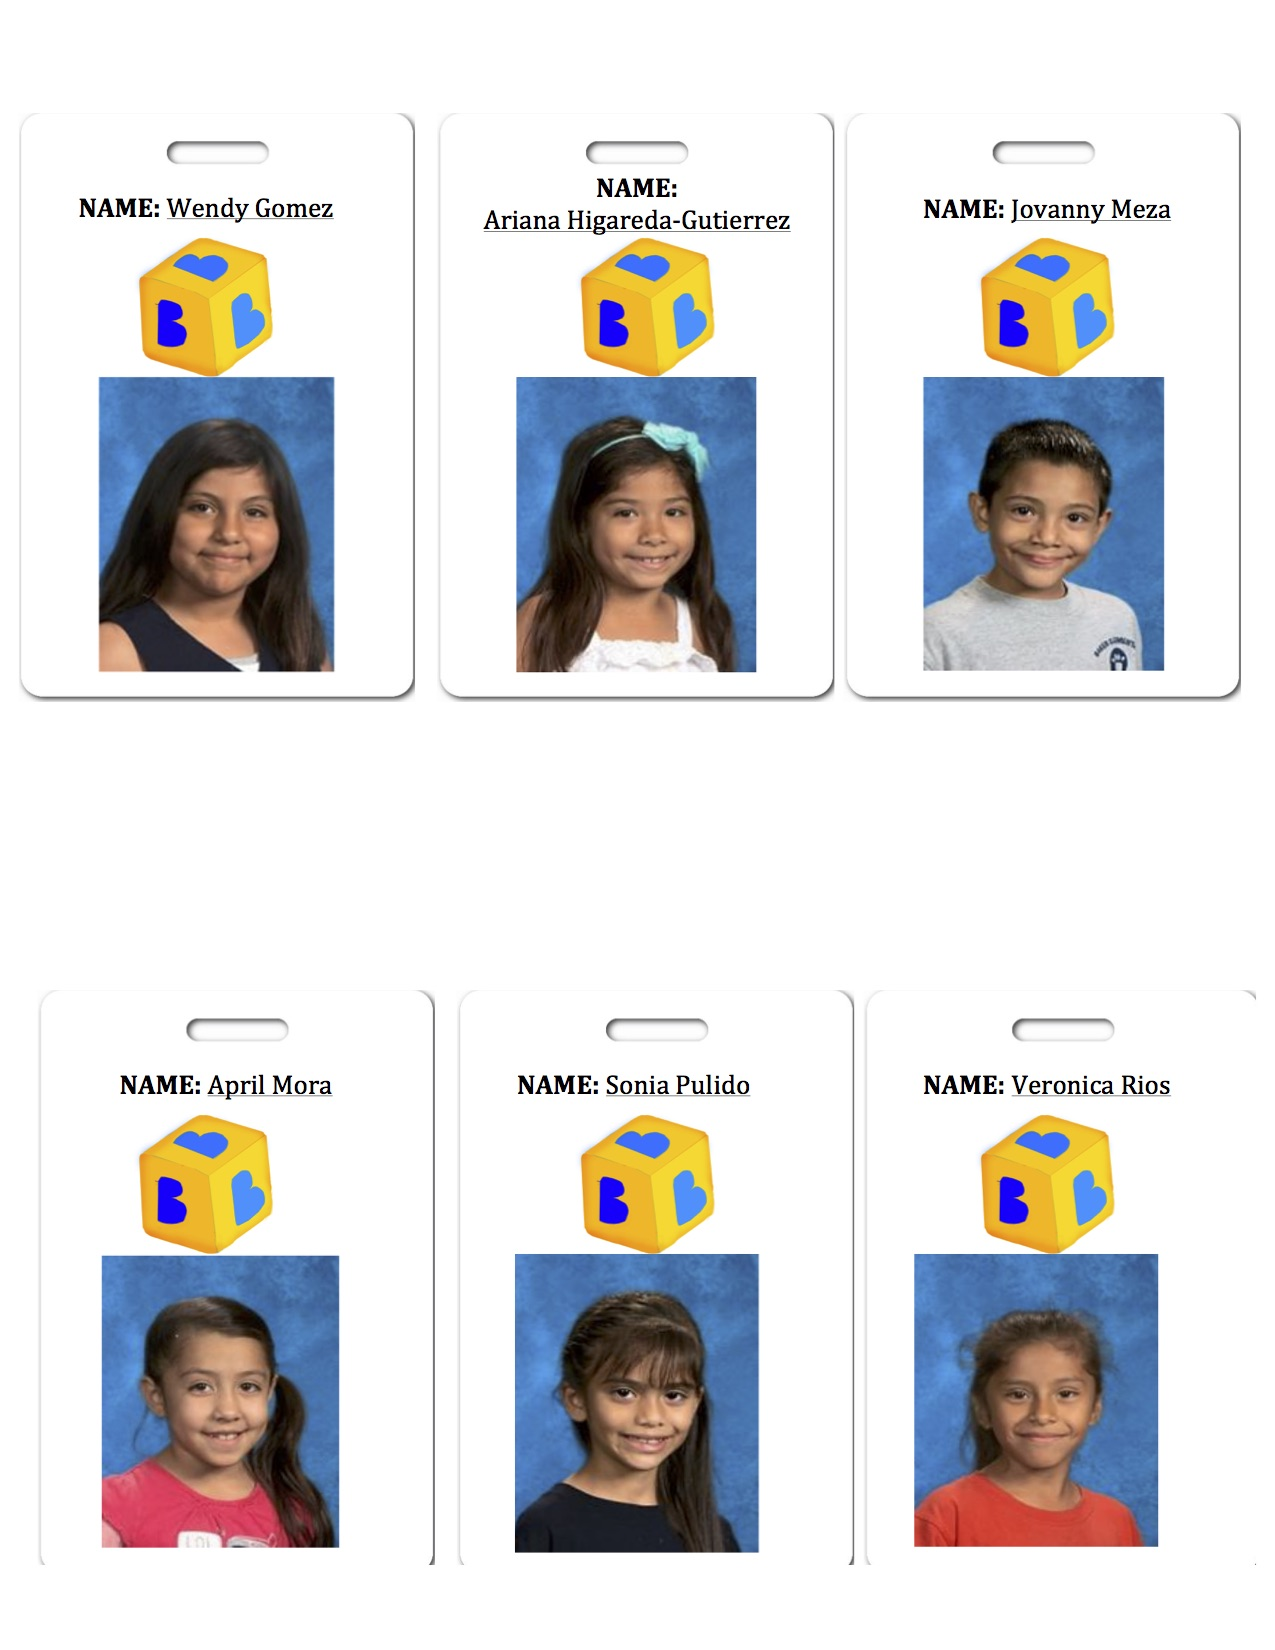 Our Elementary Engineering team's namecards